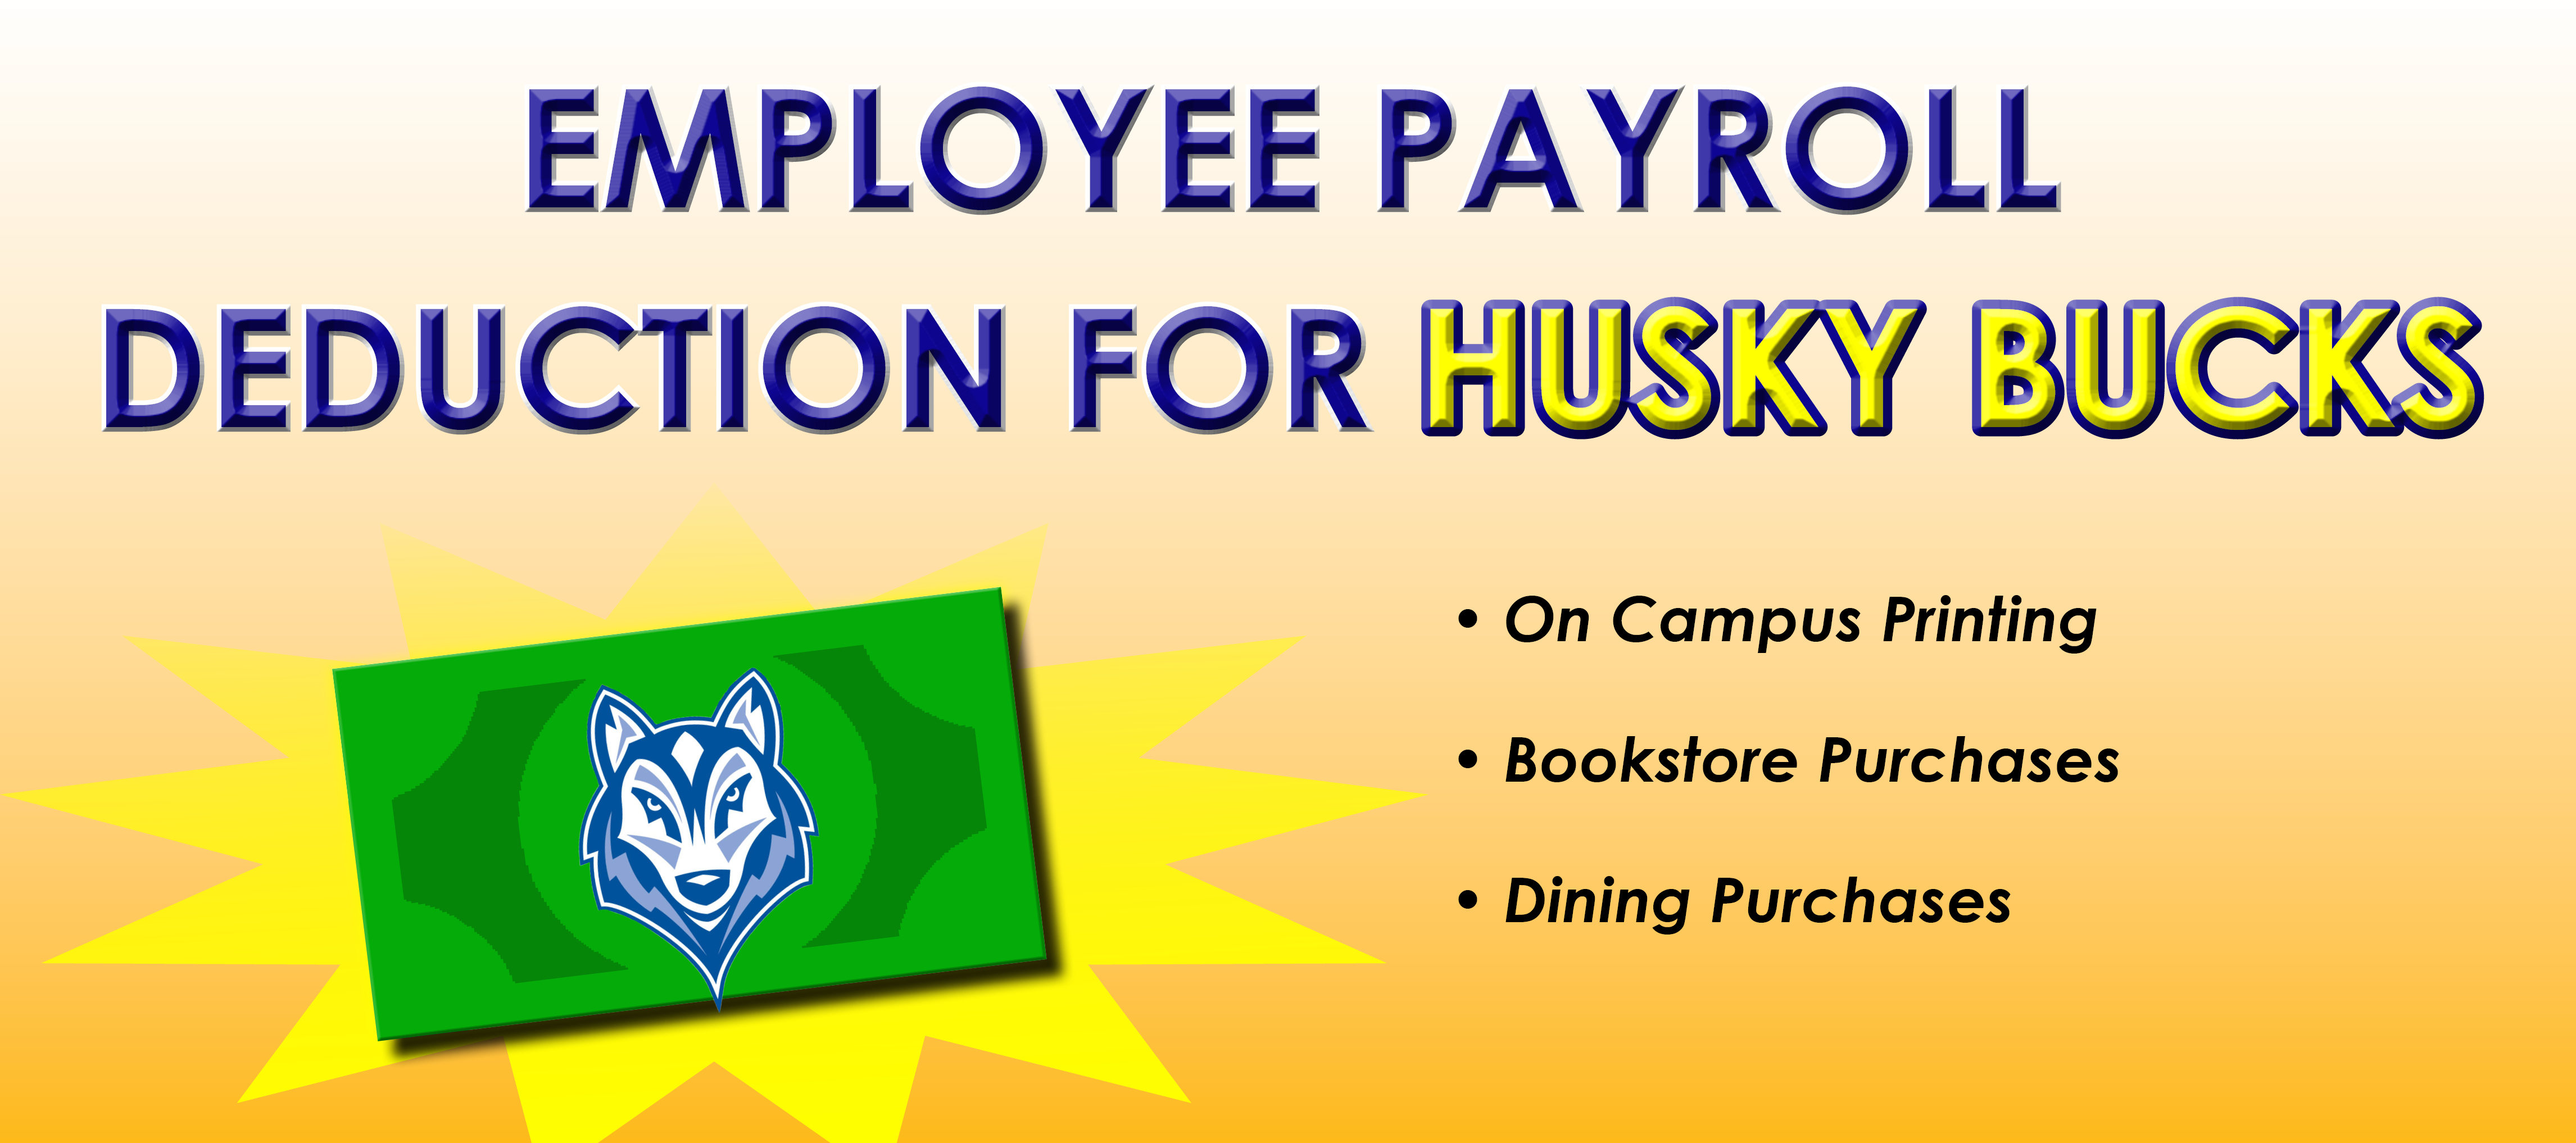 Employee hb payroll deduction